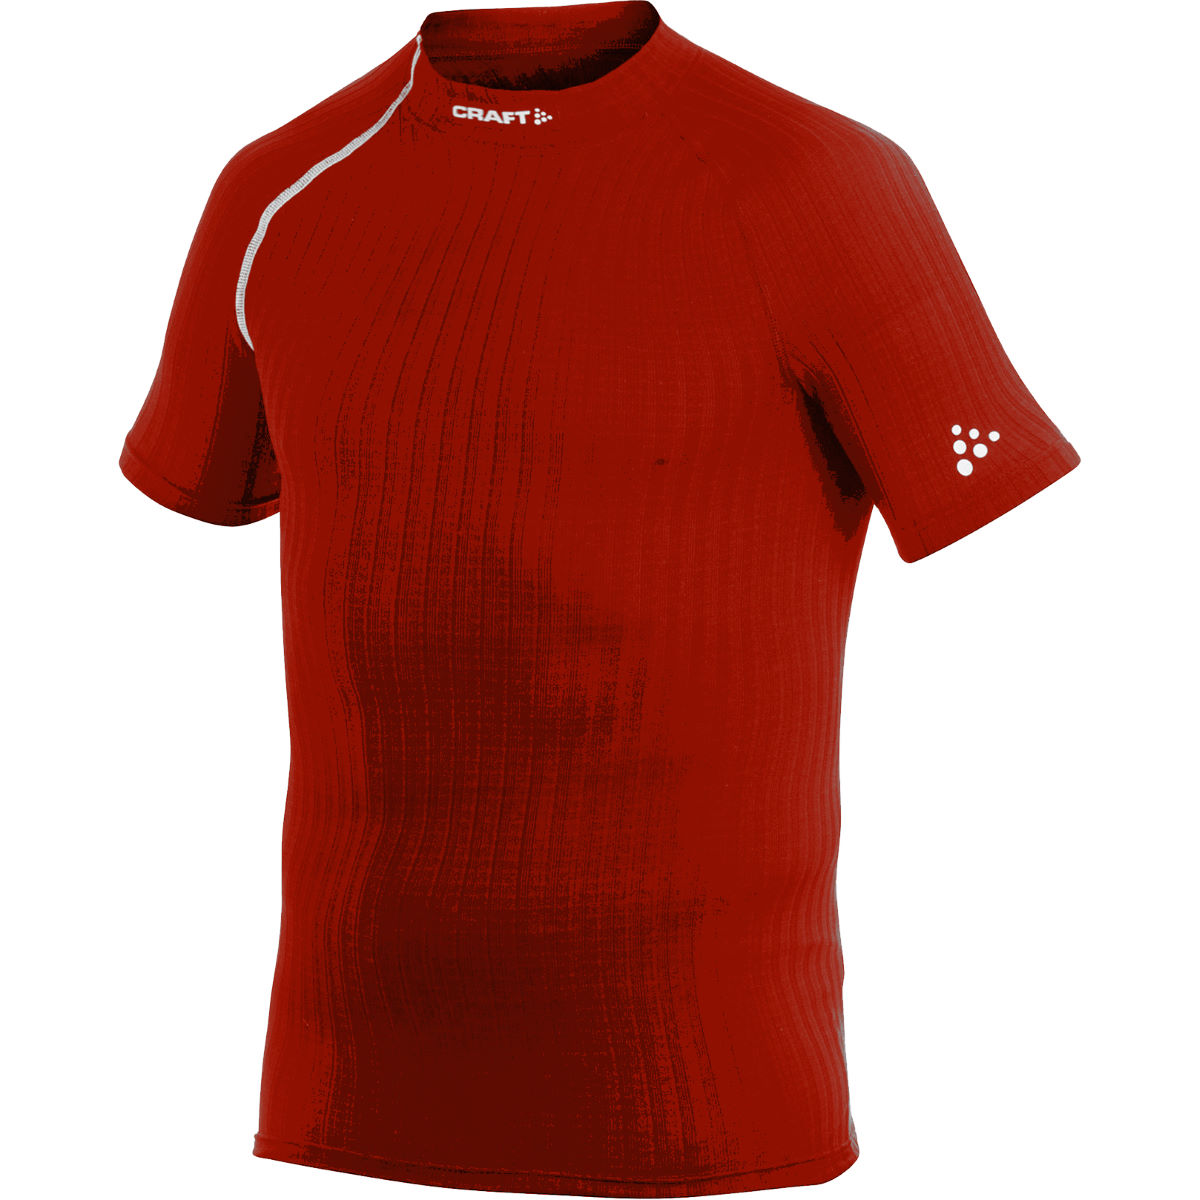 Craft Active Extreme Cn Ss Base Layer - S Bright Red  Base Layers